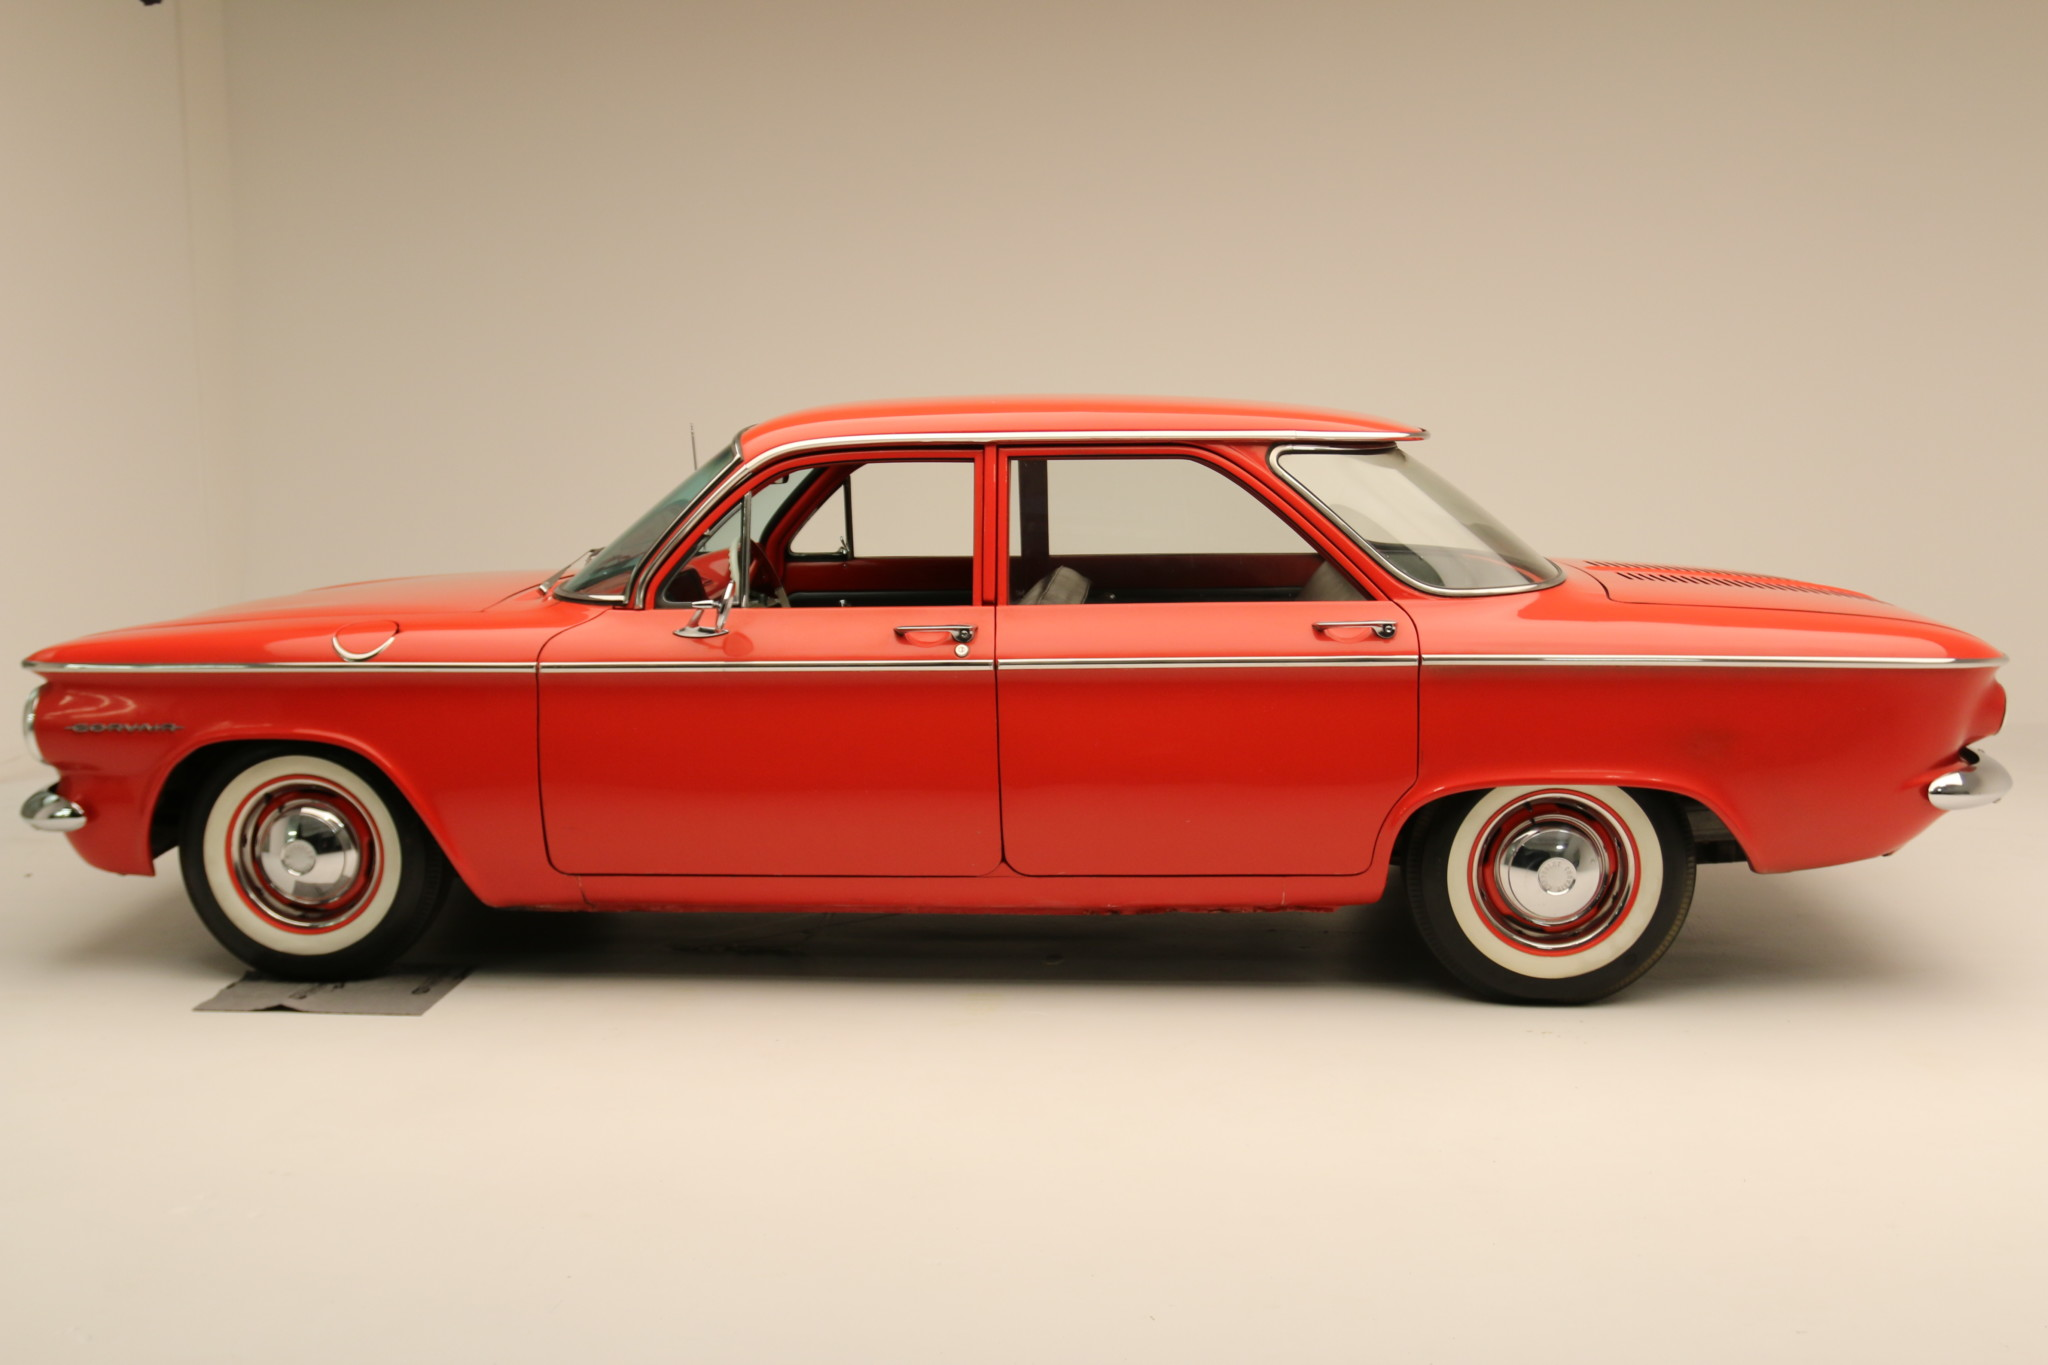 1960 Chevrolet Corvair 700side view